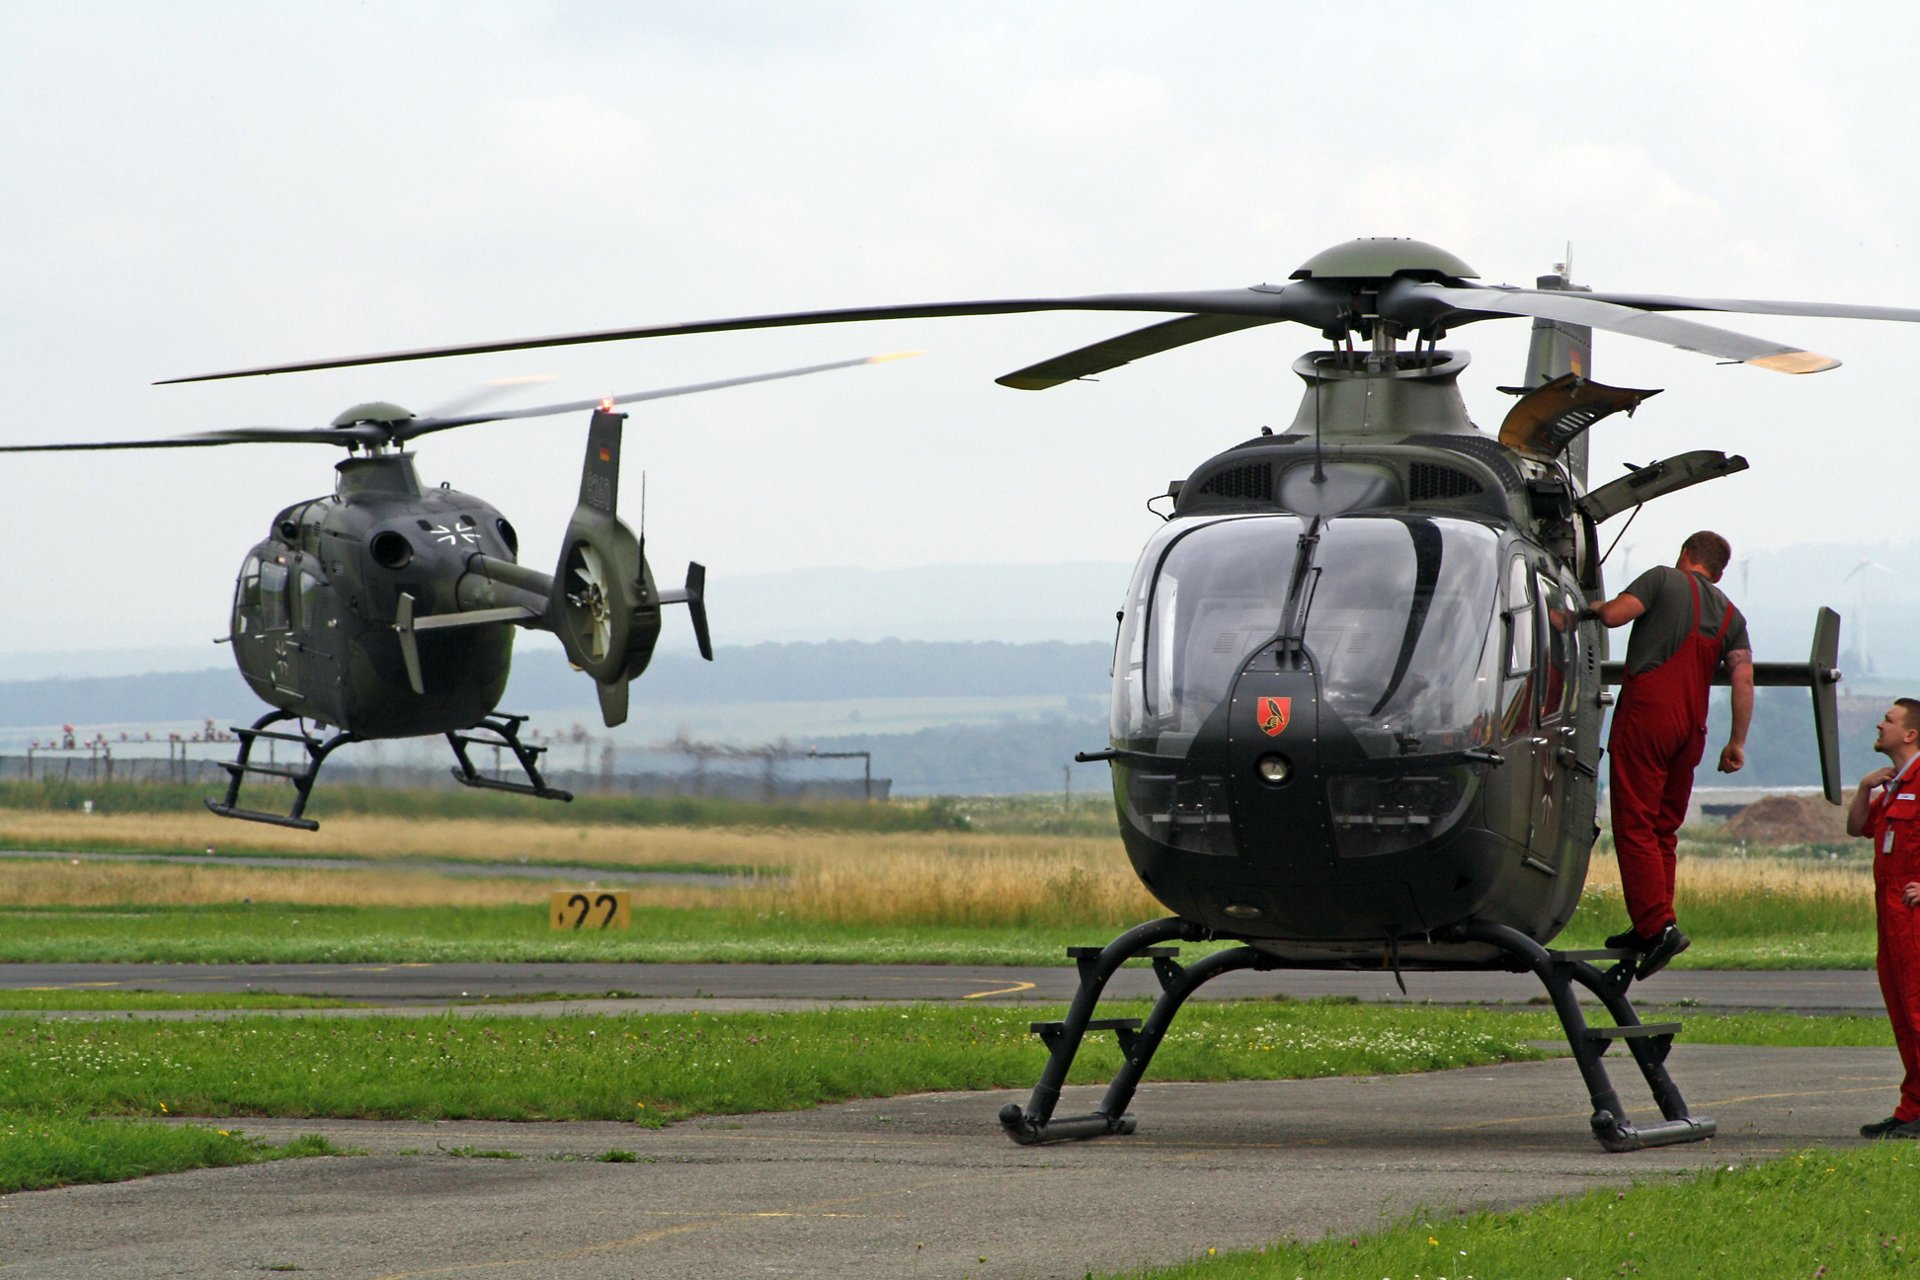 Globally, 132 H135 and H135Ms are in service with military training programmes.